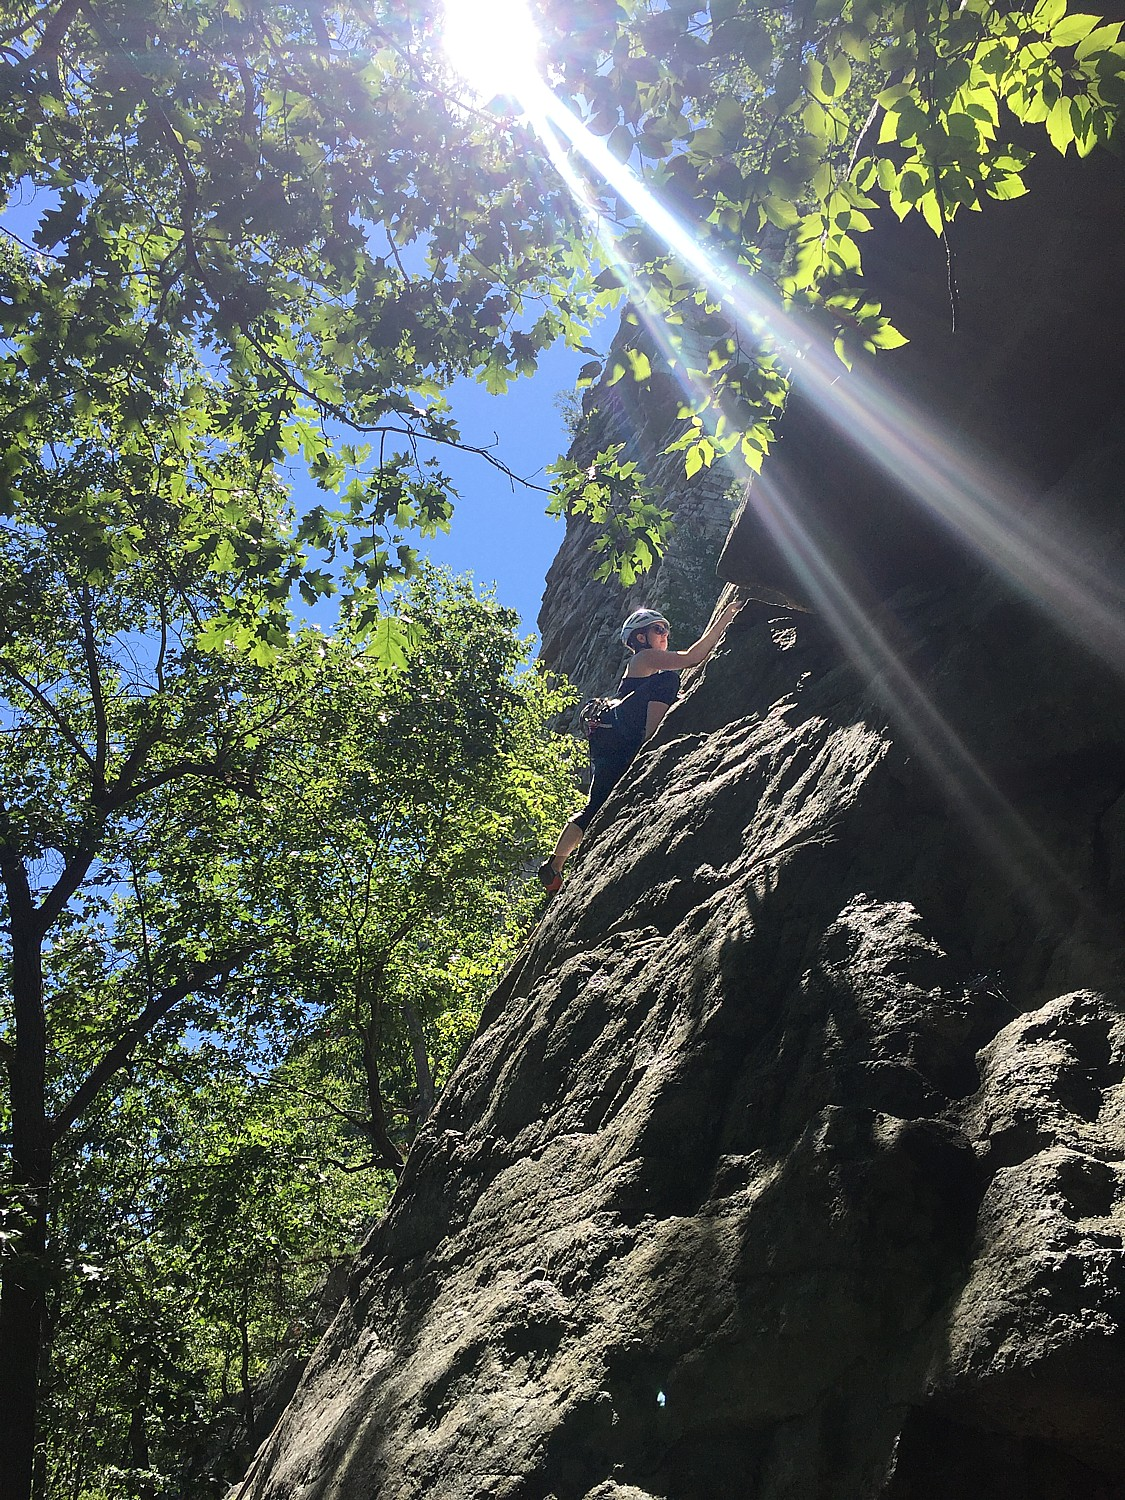 A Day in The Gunks: Out of the Gym, Ascending New Heights of Rock Climbing